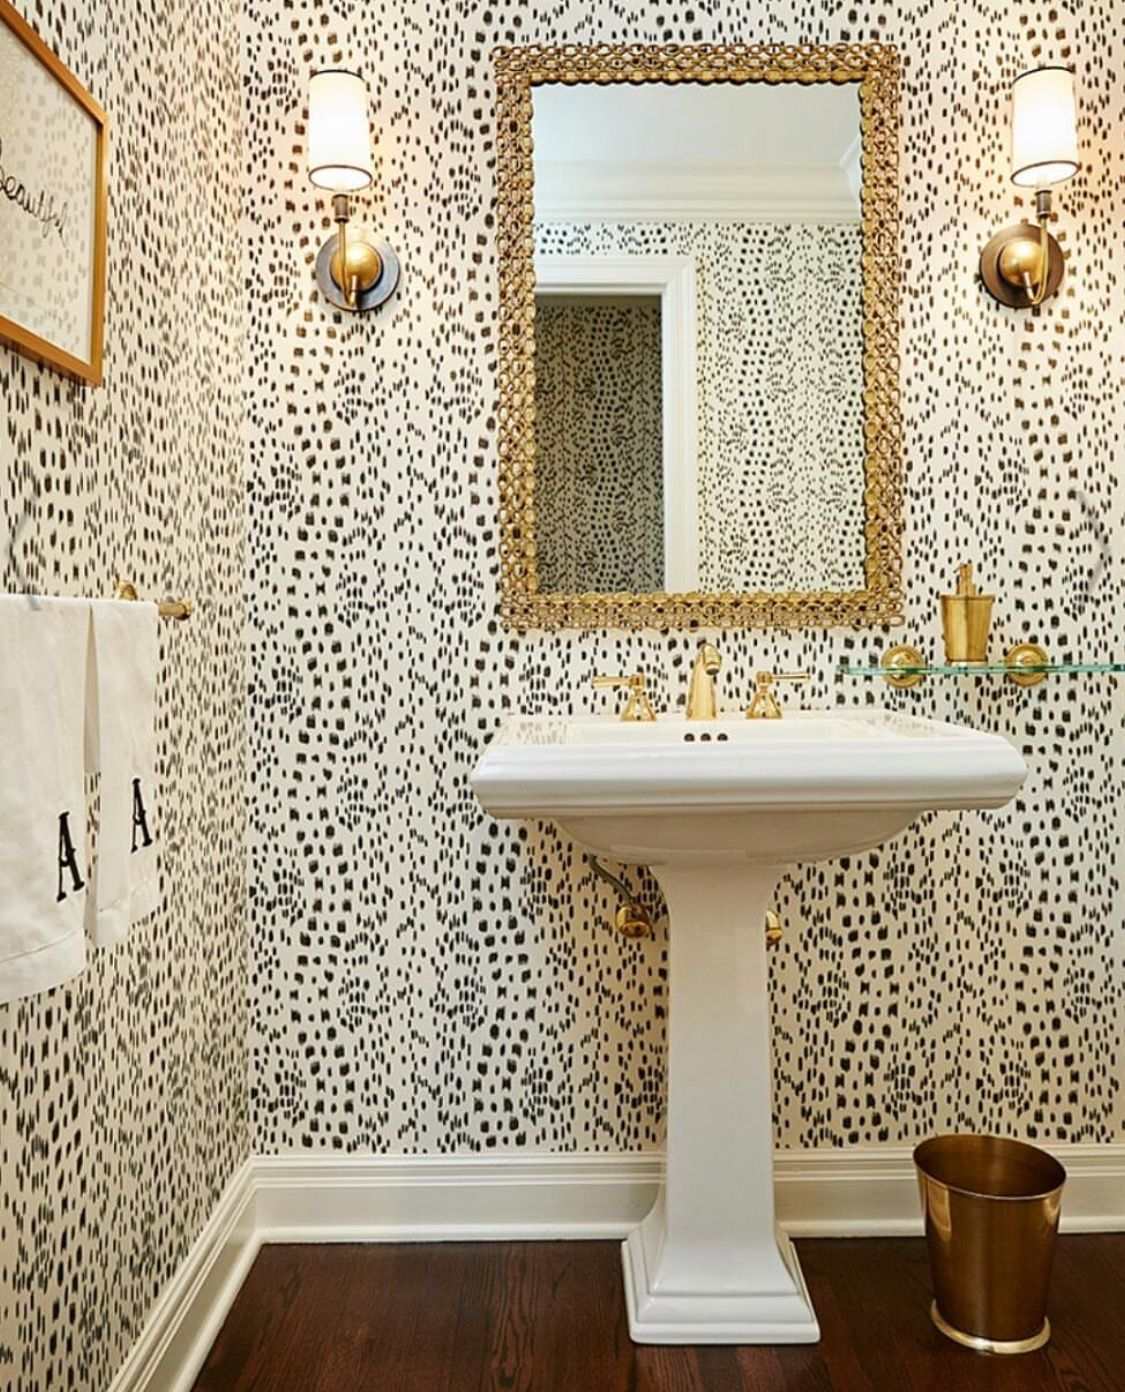 Pin By Own It Oklahoma On Bathrooms Small Bathroom Wallpaper Powder Room Wallpaper Bathroom Decor